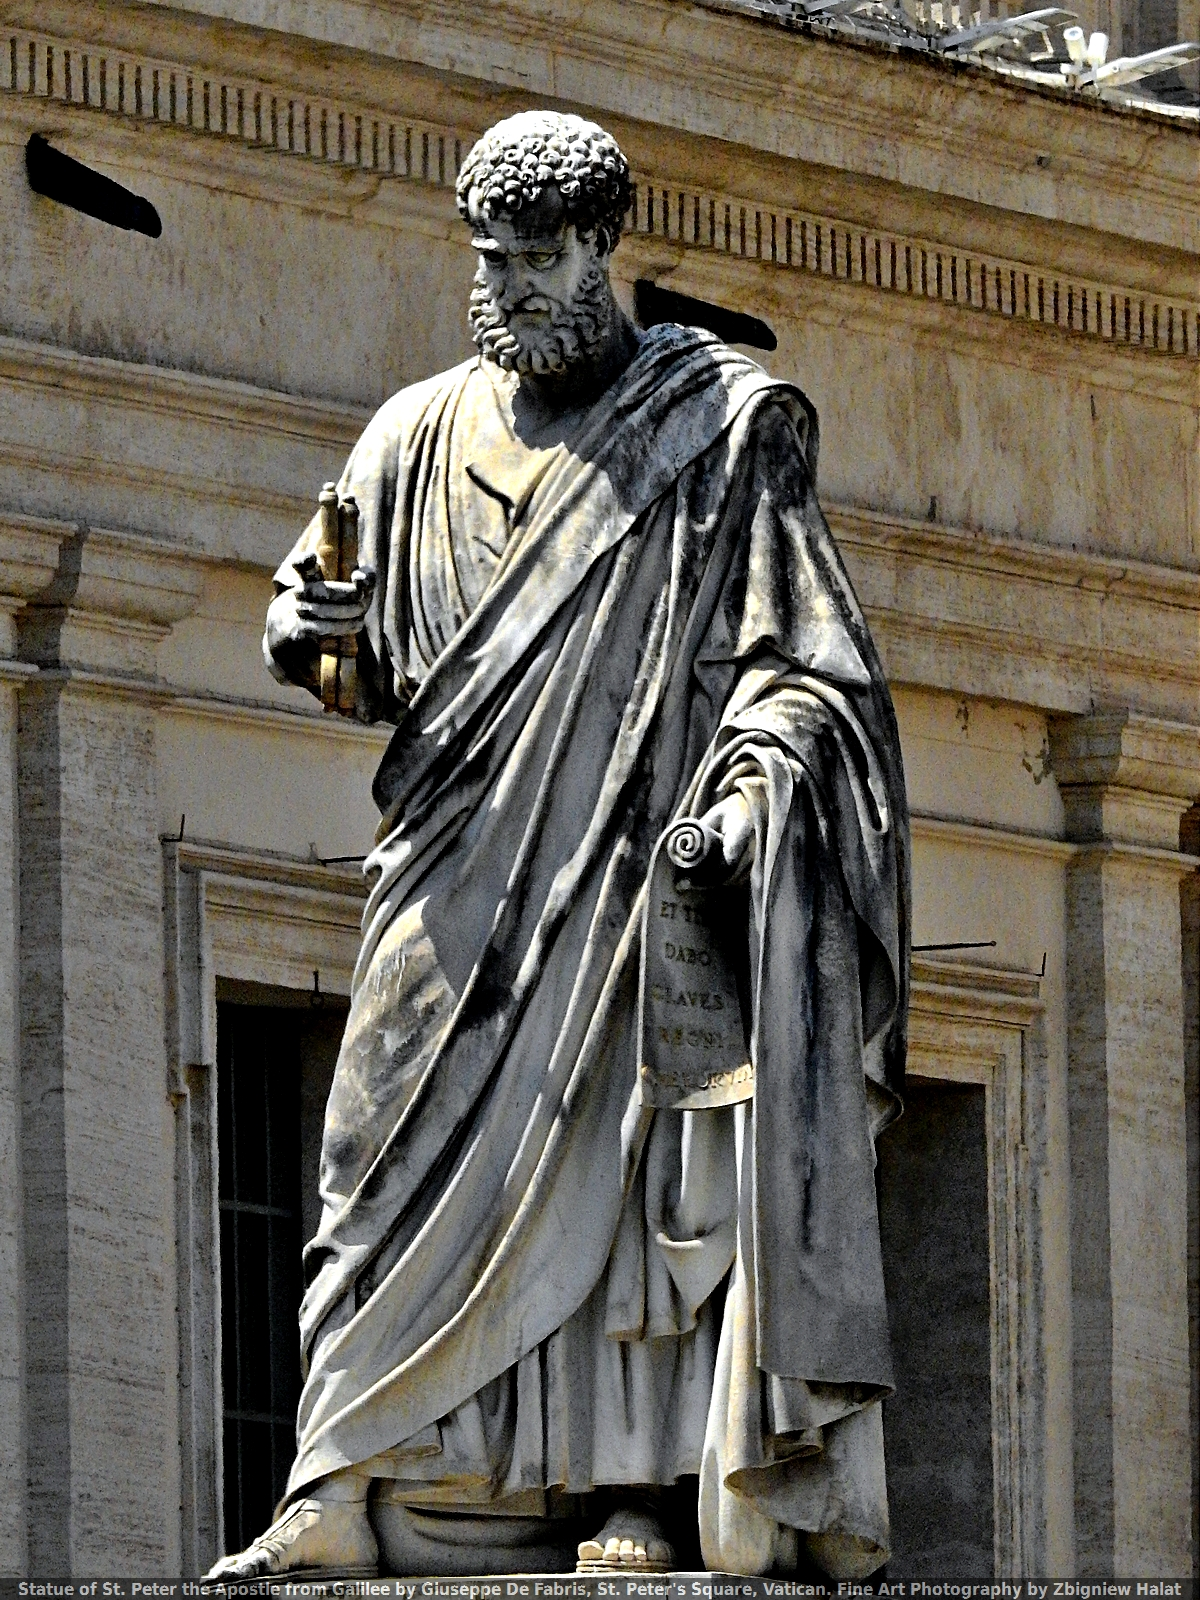 Statue of St. Peter the Apostle from Galilee by Giuseppe De Fabris, St. Peter's Square, Vatican. Fine Art Photography by Zbigniew Halat